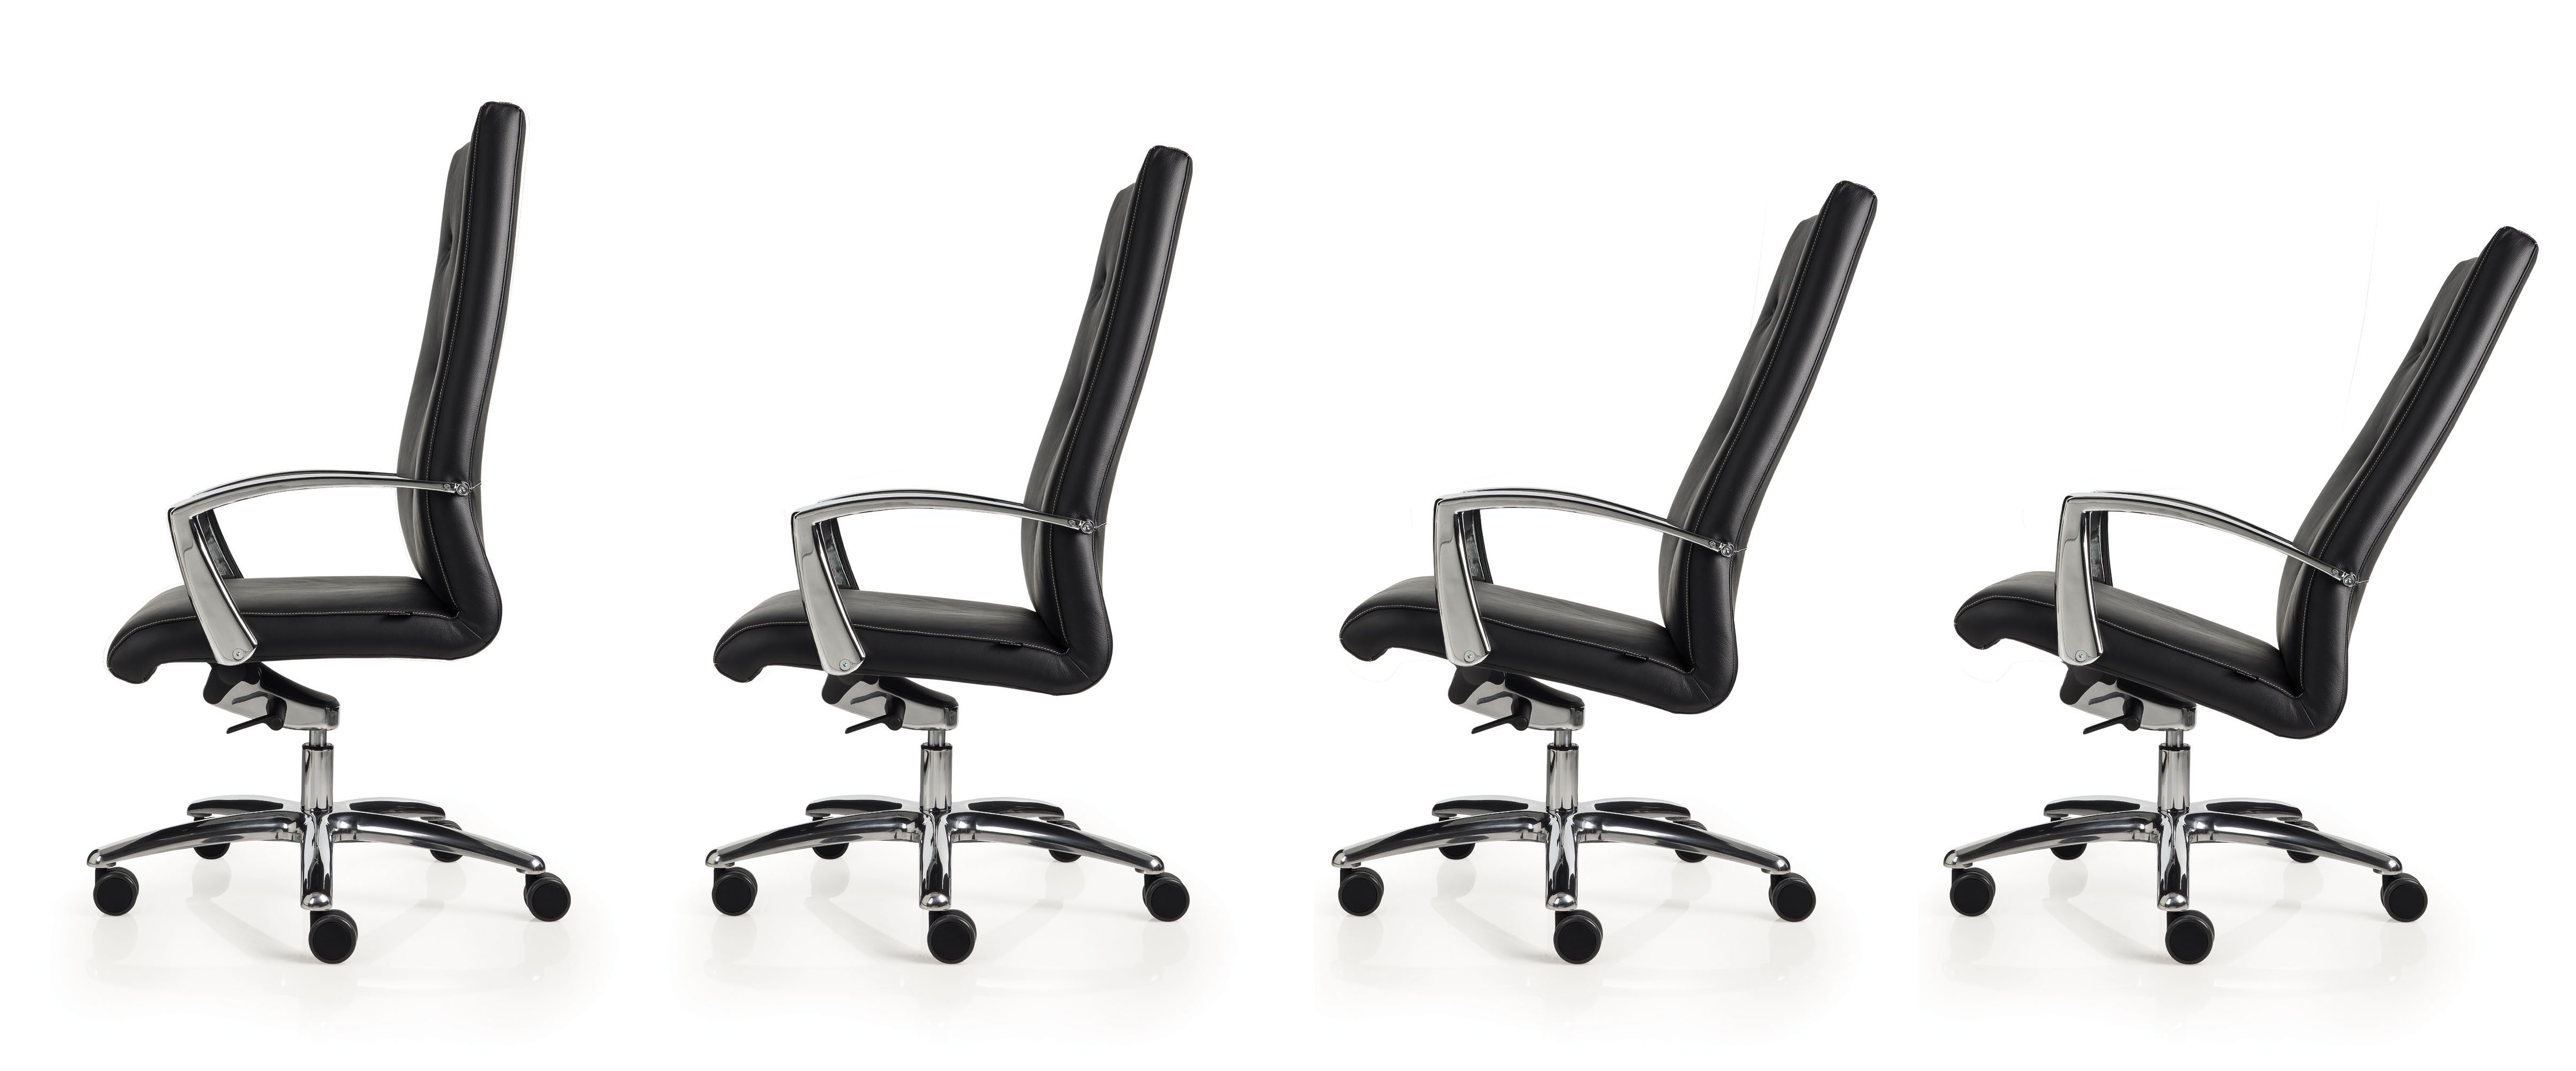 one executive chair by luxy